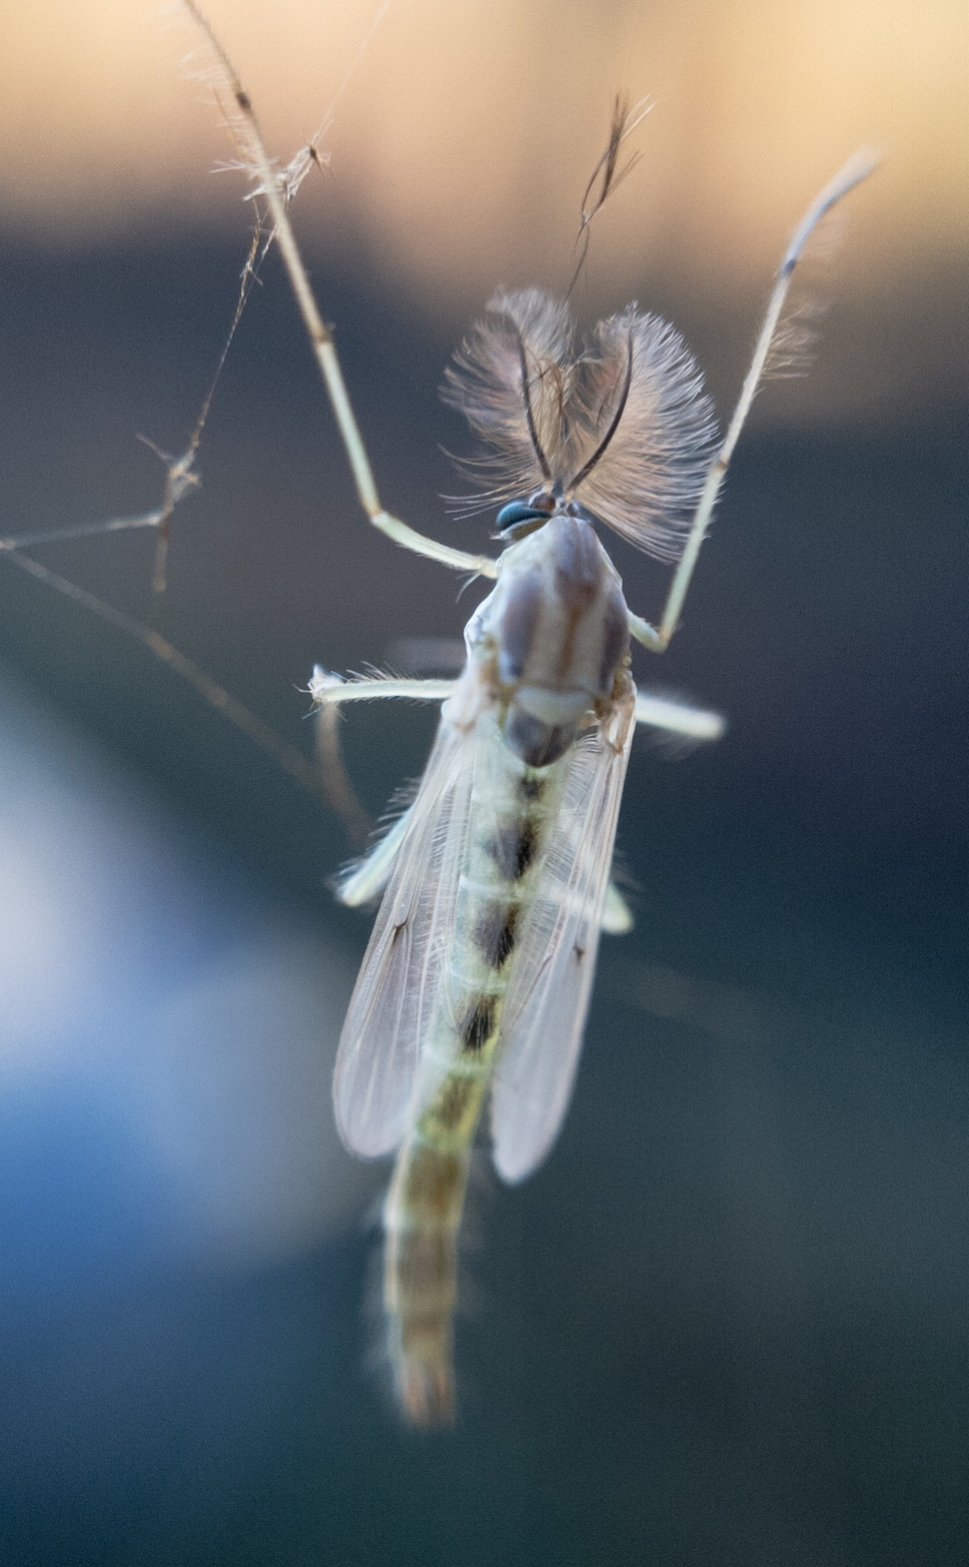 A Non-biting midge, photographed by Tony Iwane, using an iPhone and clip-on macro lens.